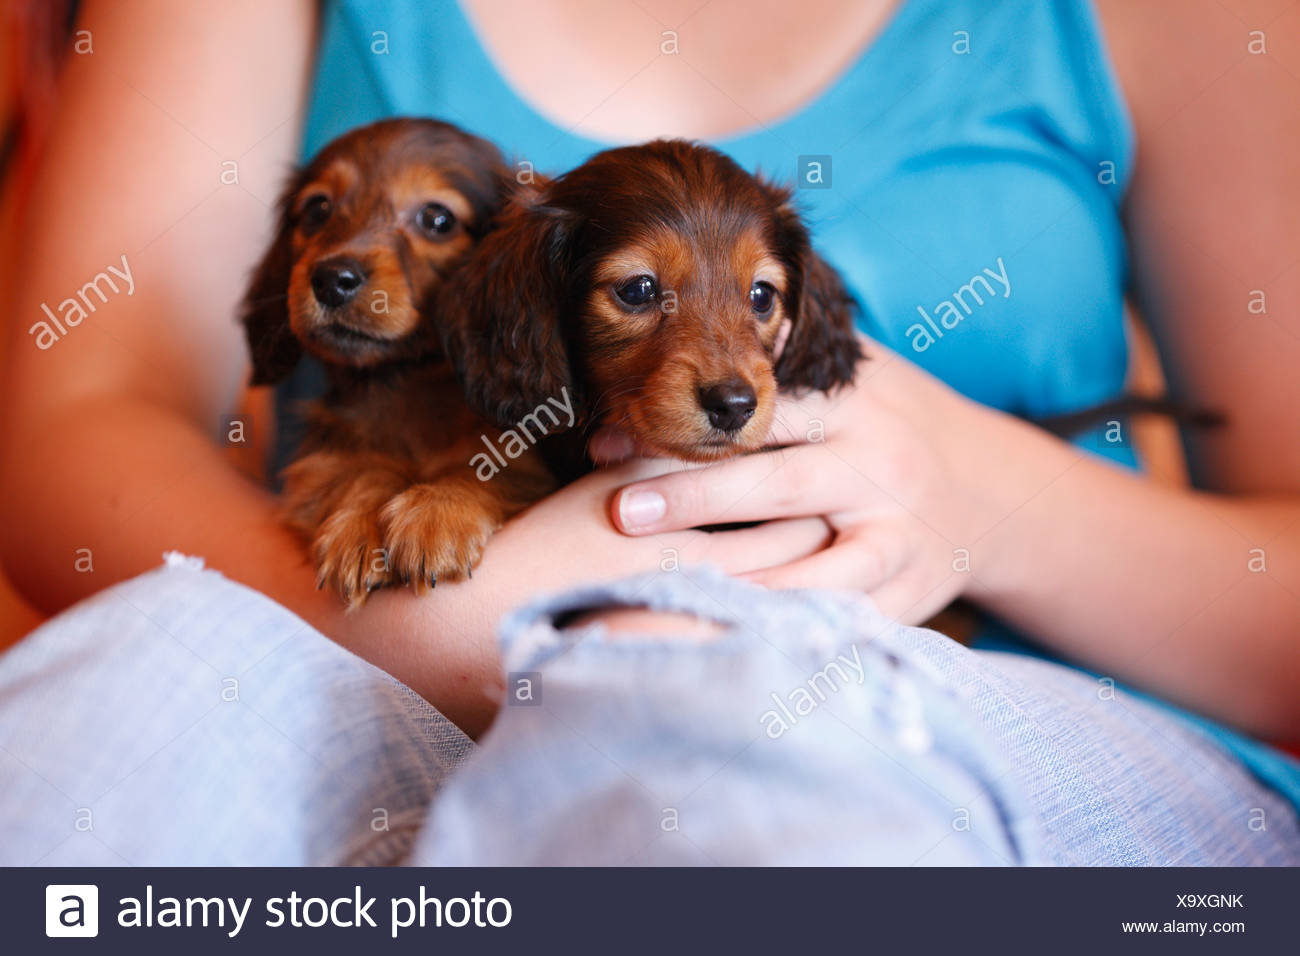 Long Haired Miniature Dachshund Dogs High Resolution Stock Photography And Images Alamy